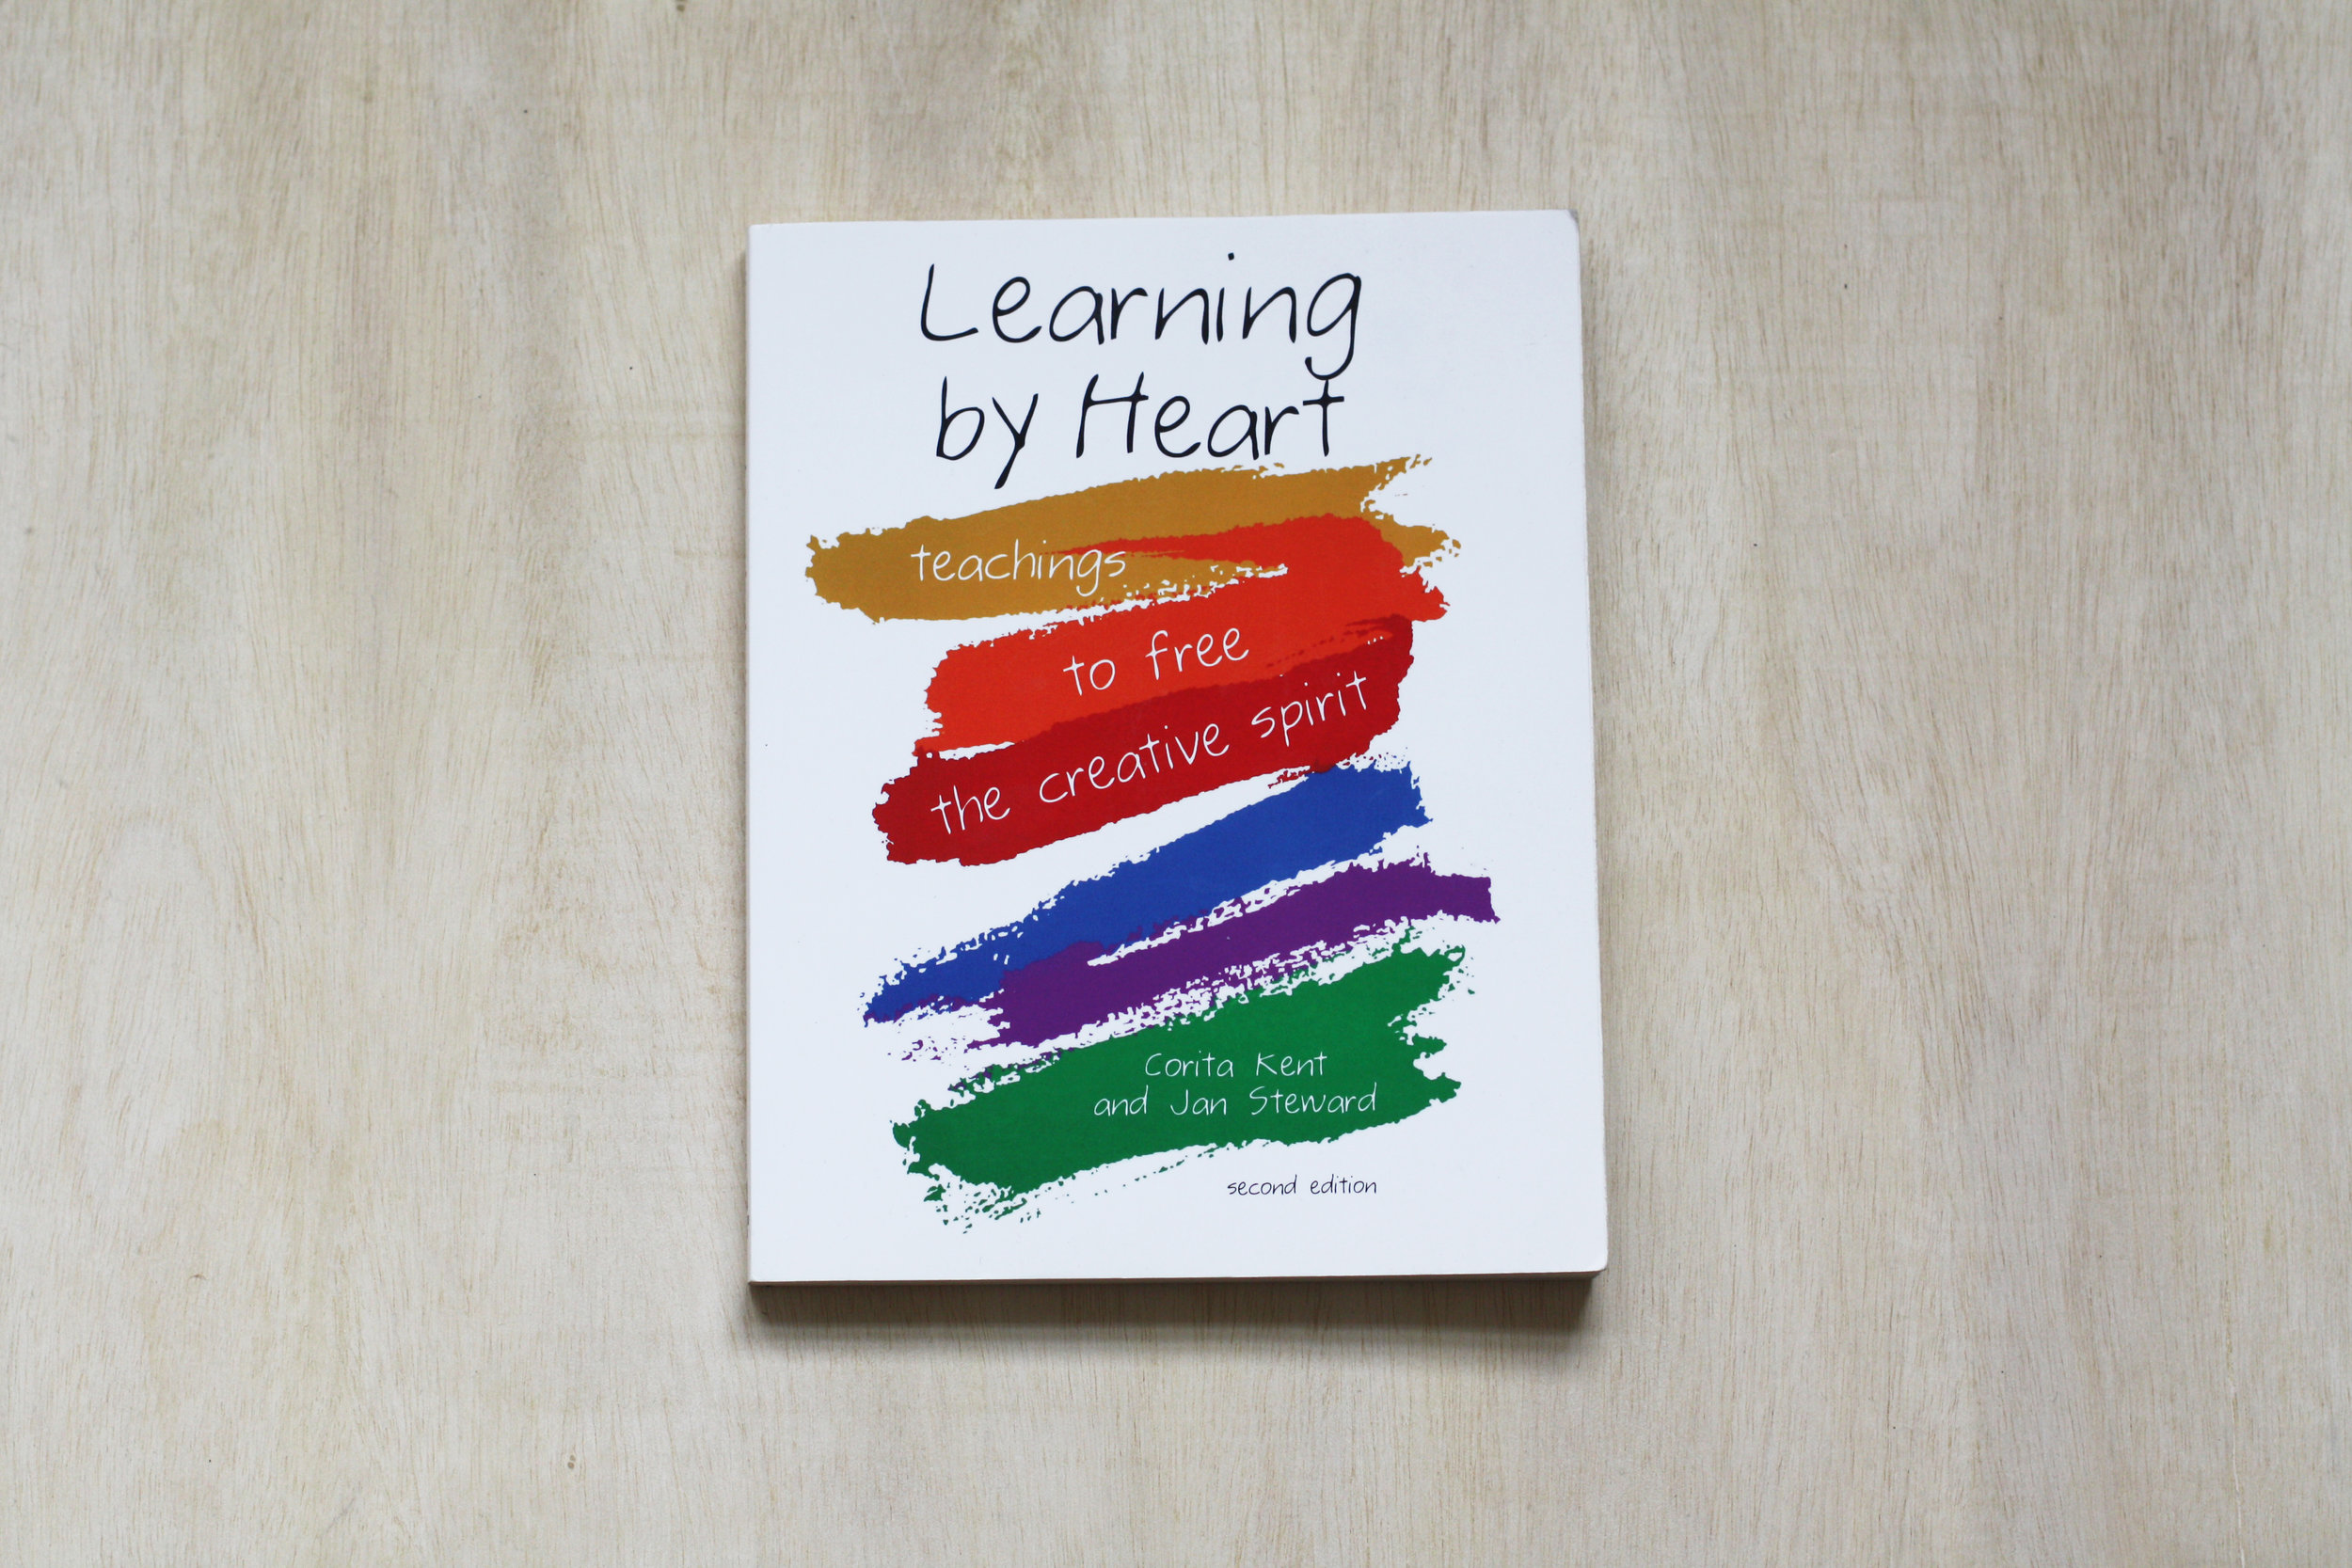 Learning by Heart: Teachings to Free the Creative Spirit  by Corita Kent and Jan Steward